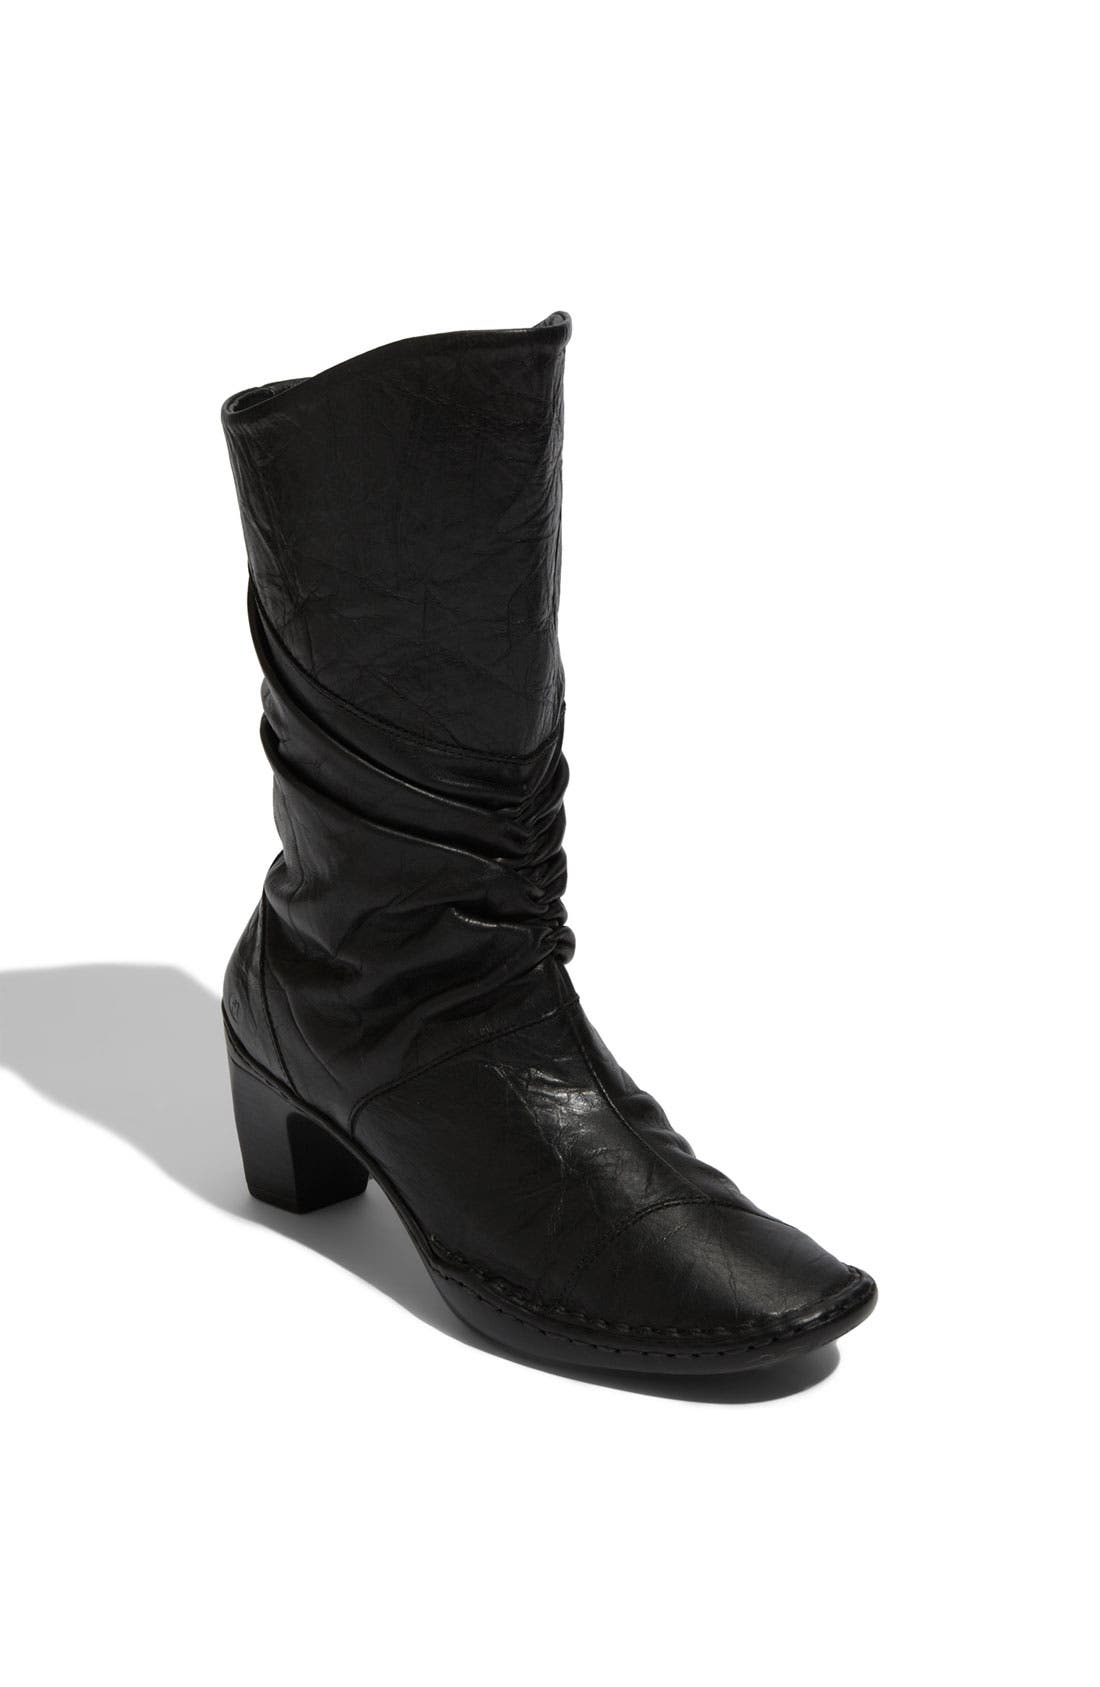 Alternate Image 1 Selected - Josef Seibel 'Calla 05' Boot